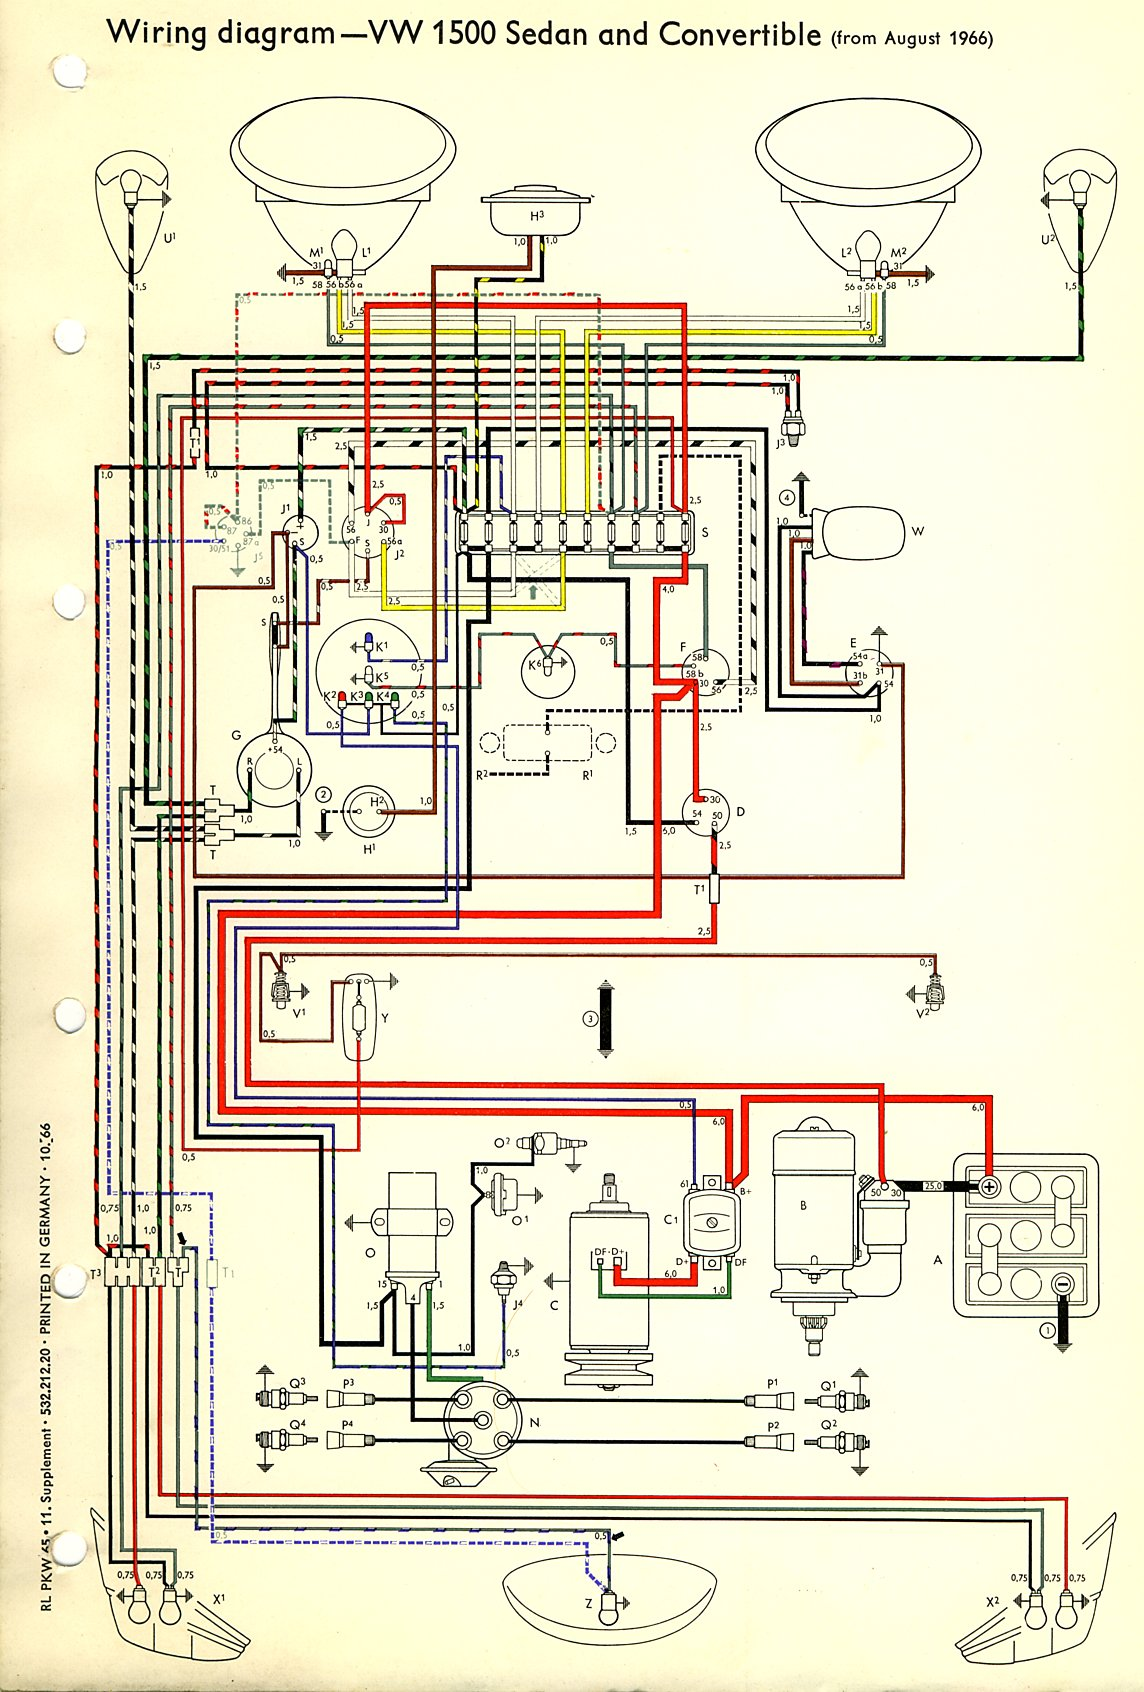 bug_67 1967 beetle wiring diagram thegoldenbug com 1969 vw beetle wiring diagram at bayanpartner.co